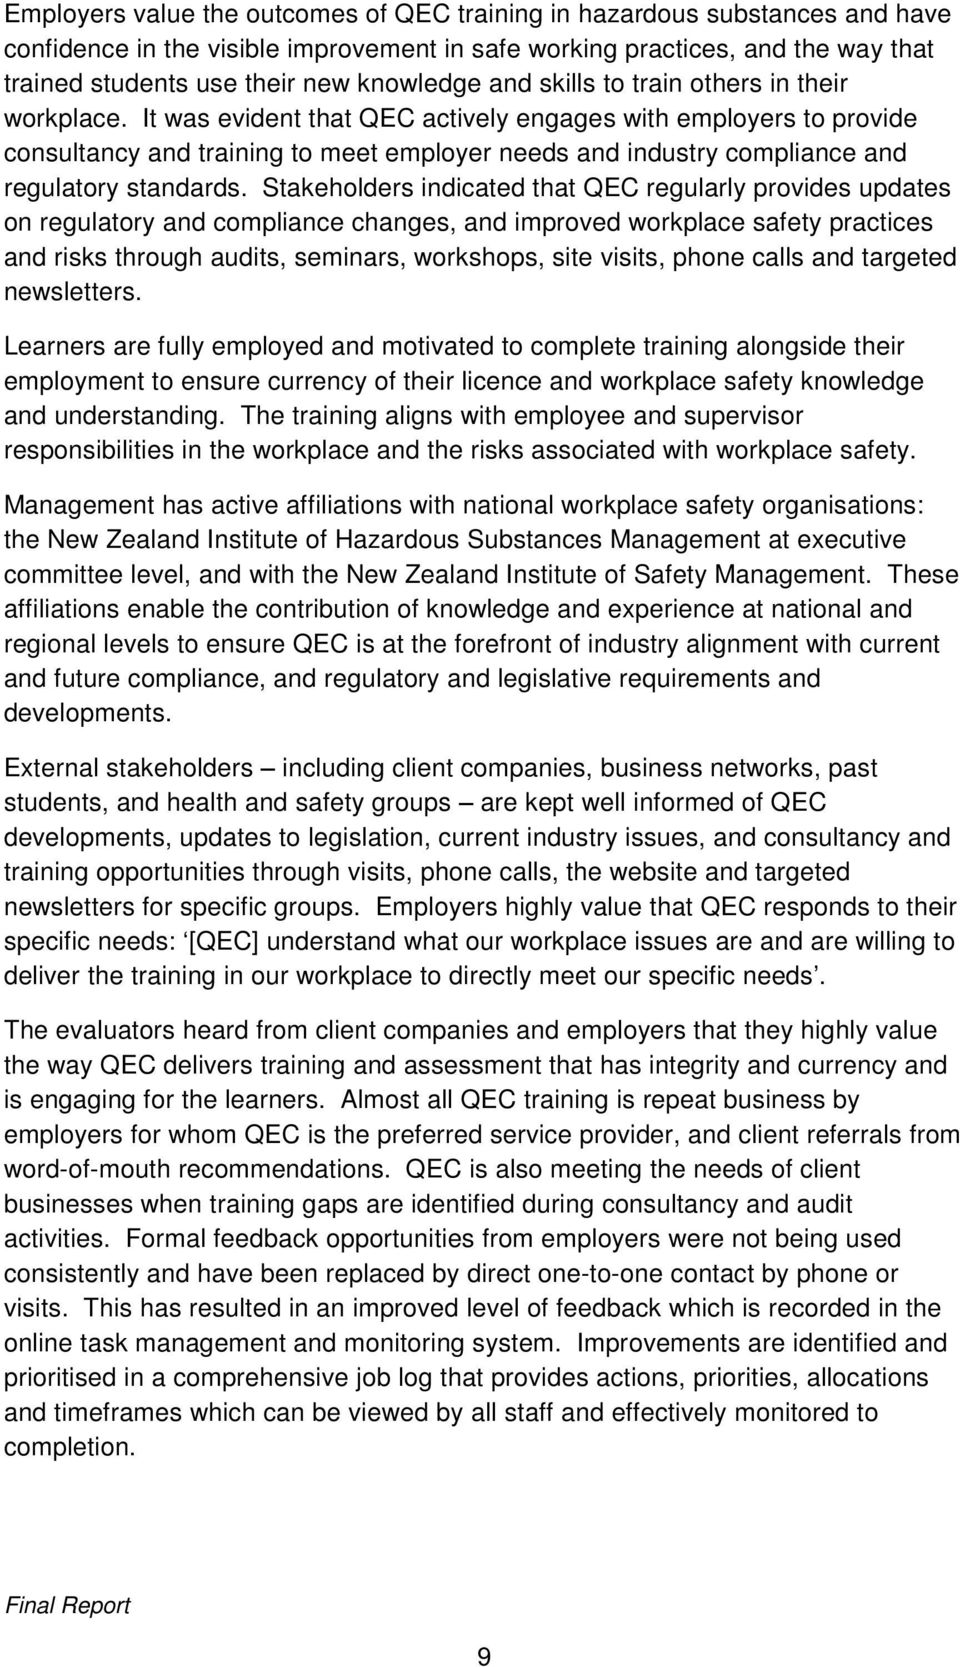 It was evident that QEC actively engages with employers to provide consultancy and training to meet employer needs and industry compliance and regulatory standards.